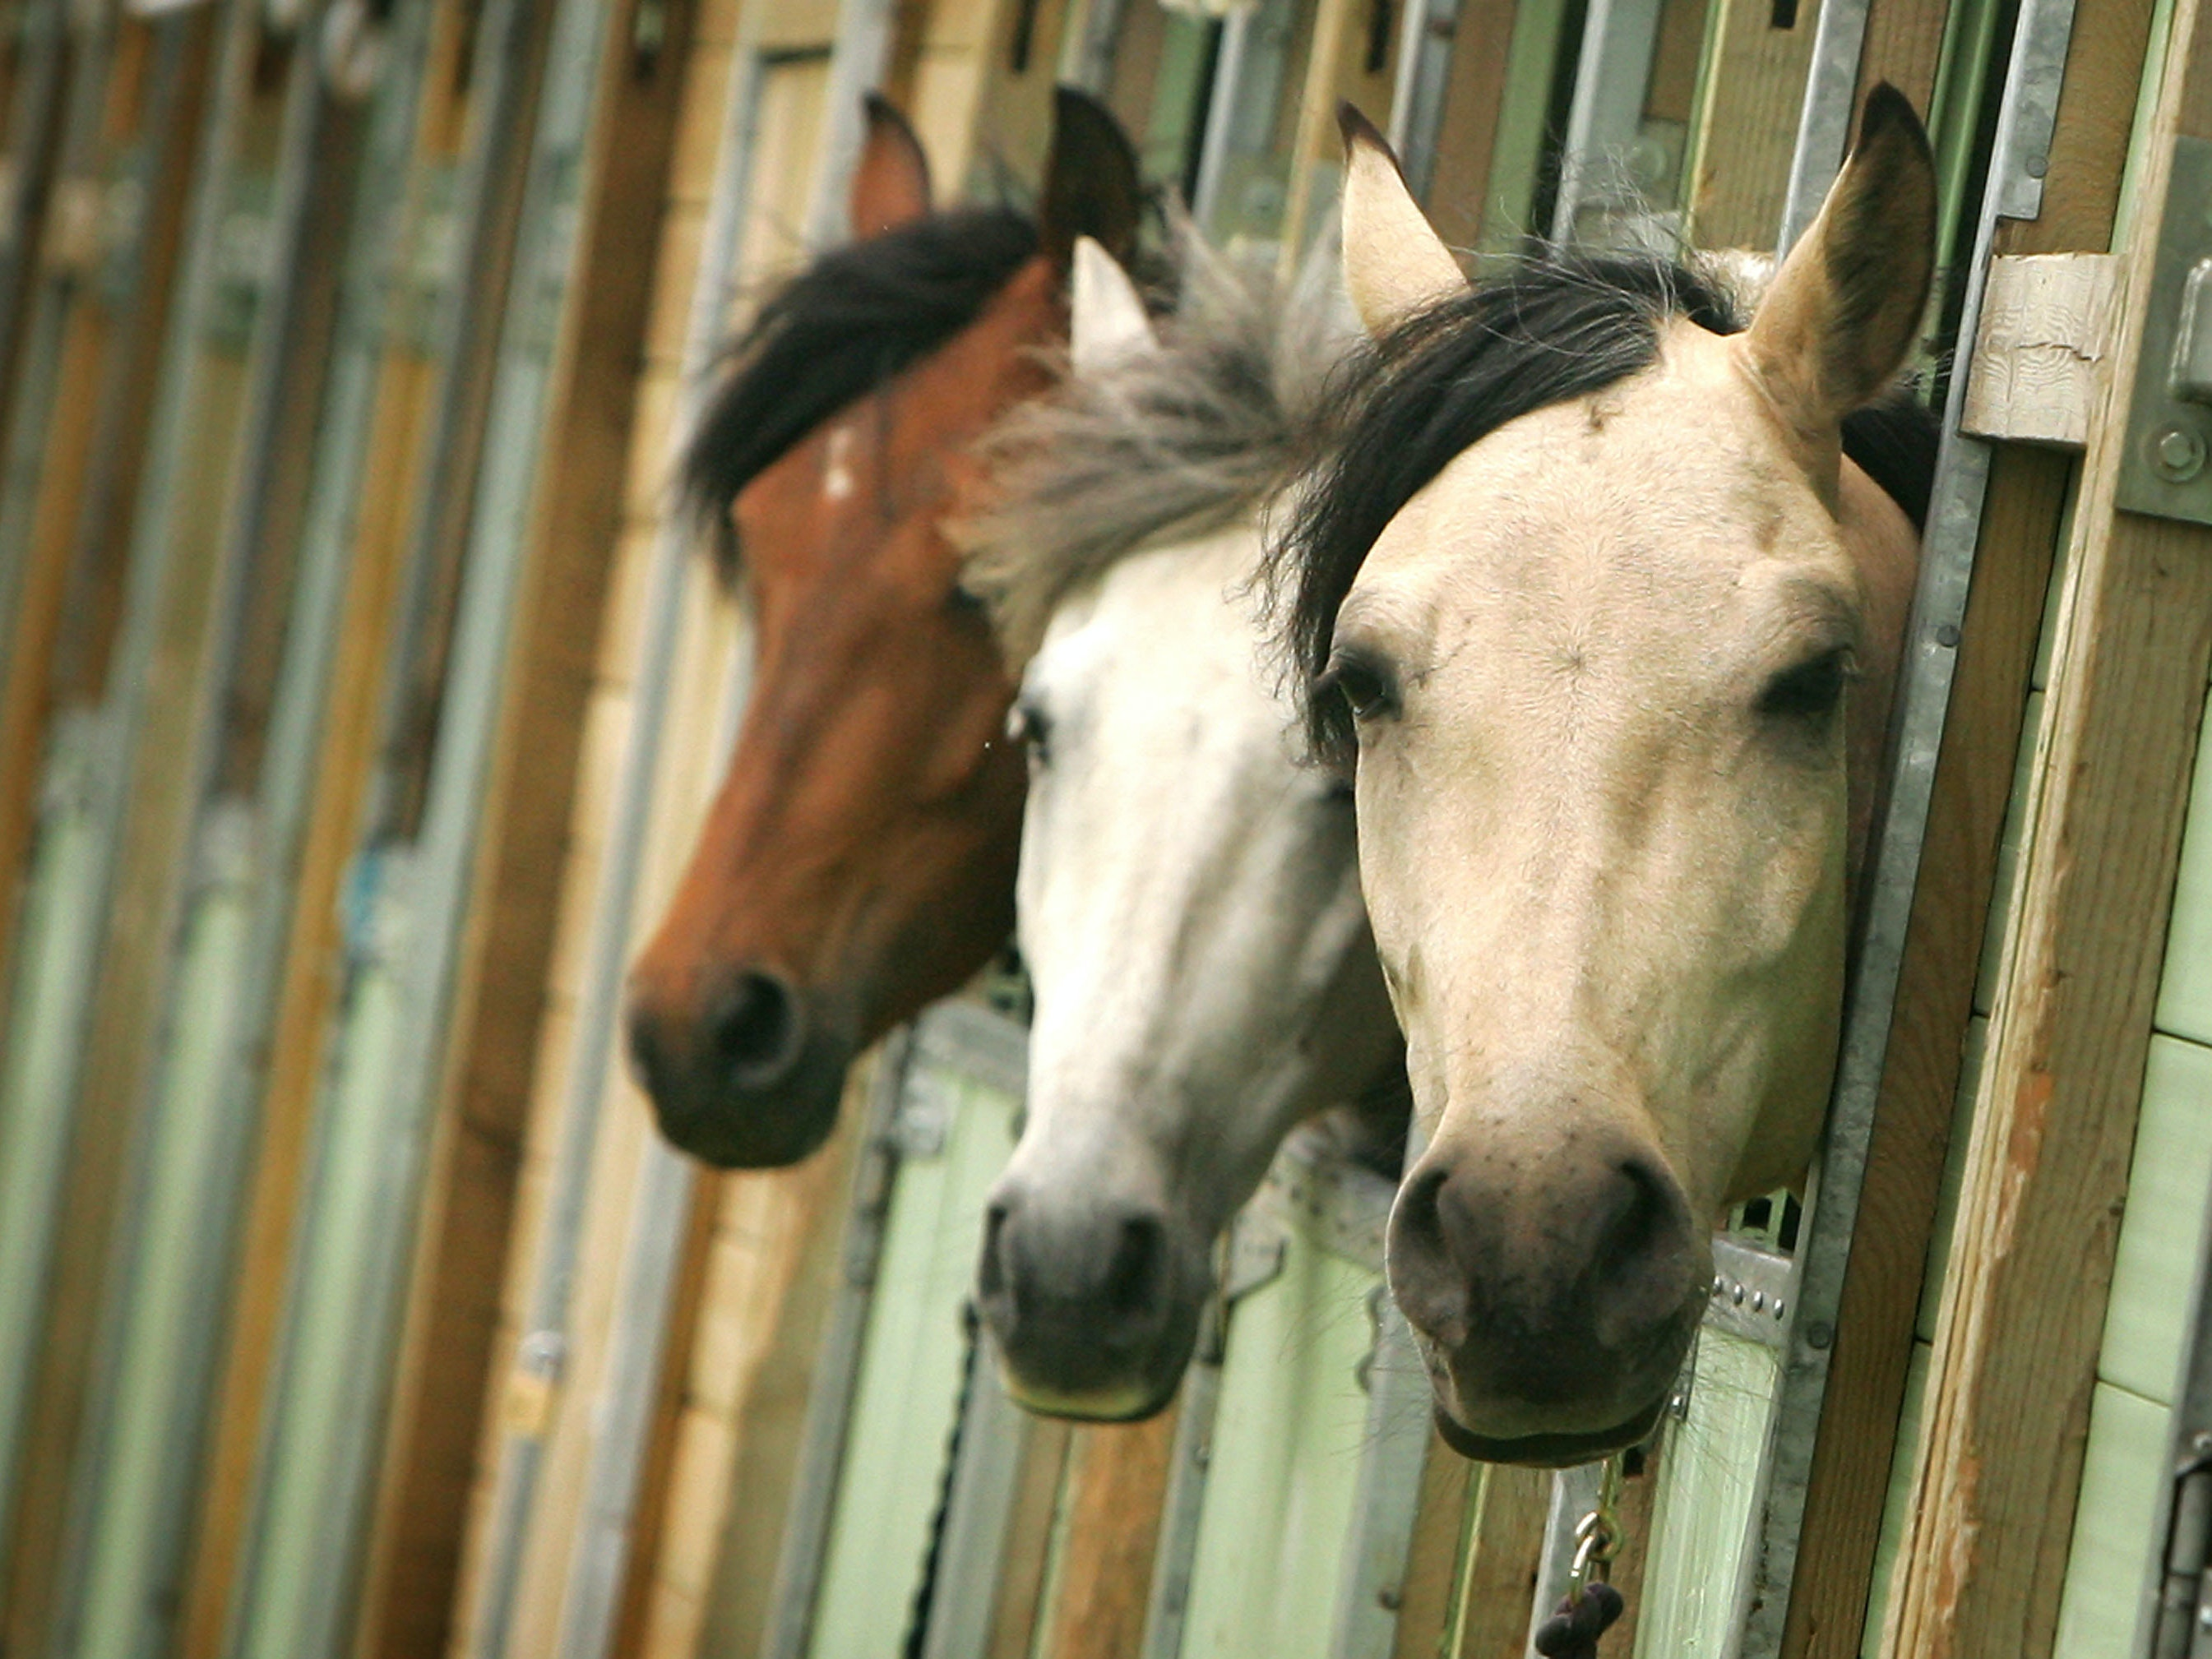 New Study Confirms That Horses Can Read Human Emotions